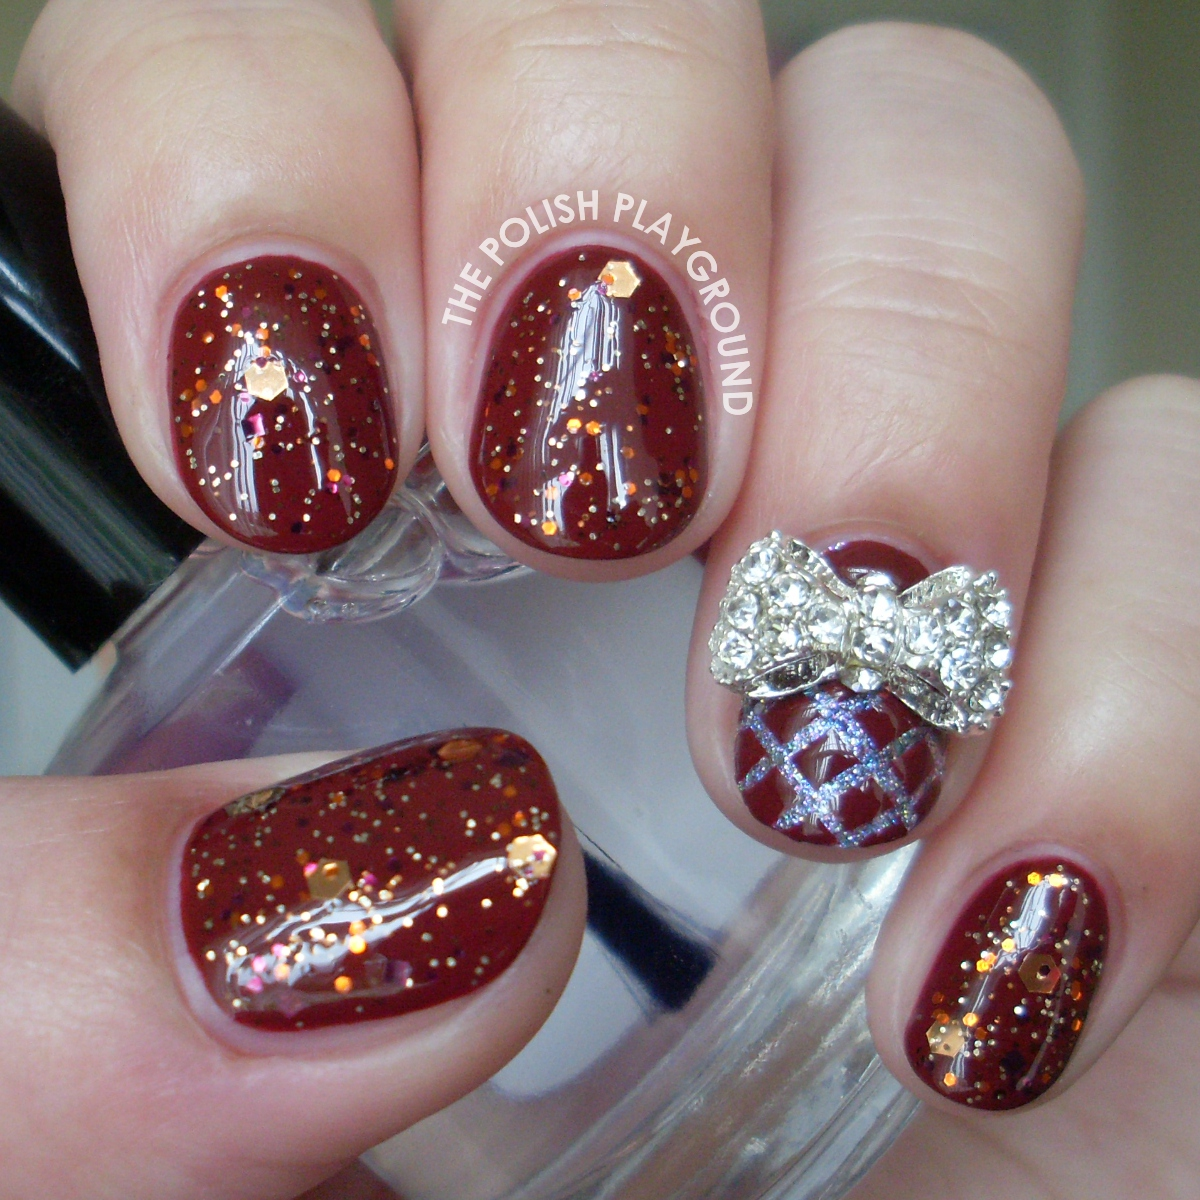 Glittery Fall Inspired Nails with Bow Stud Accent Nail Art